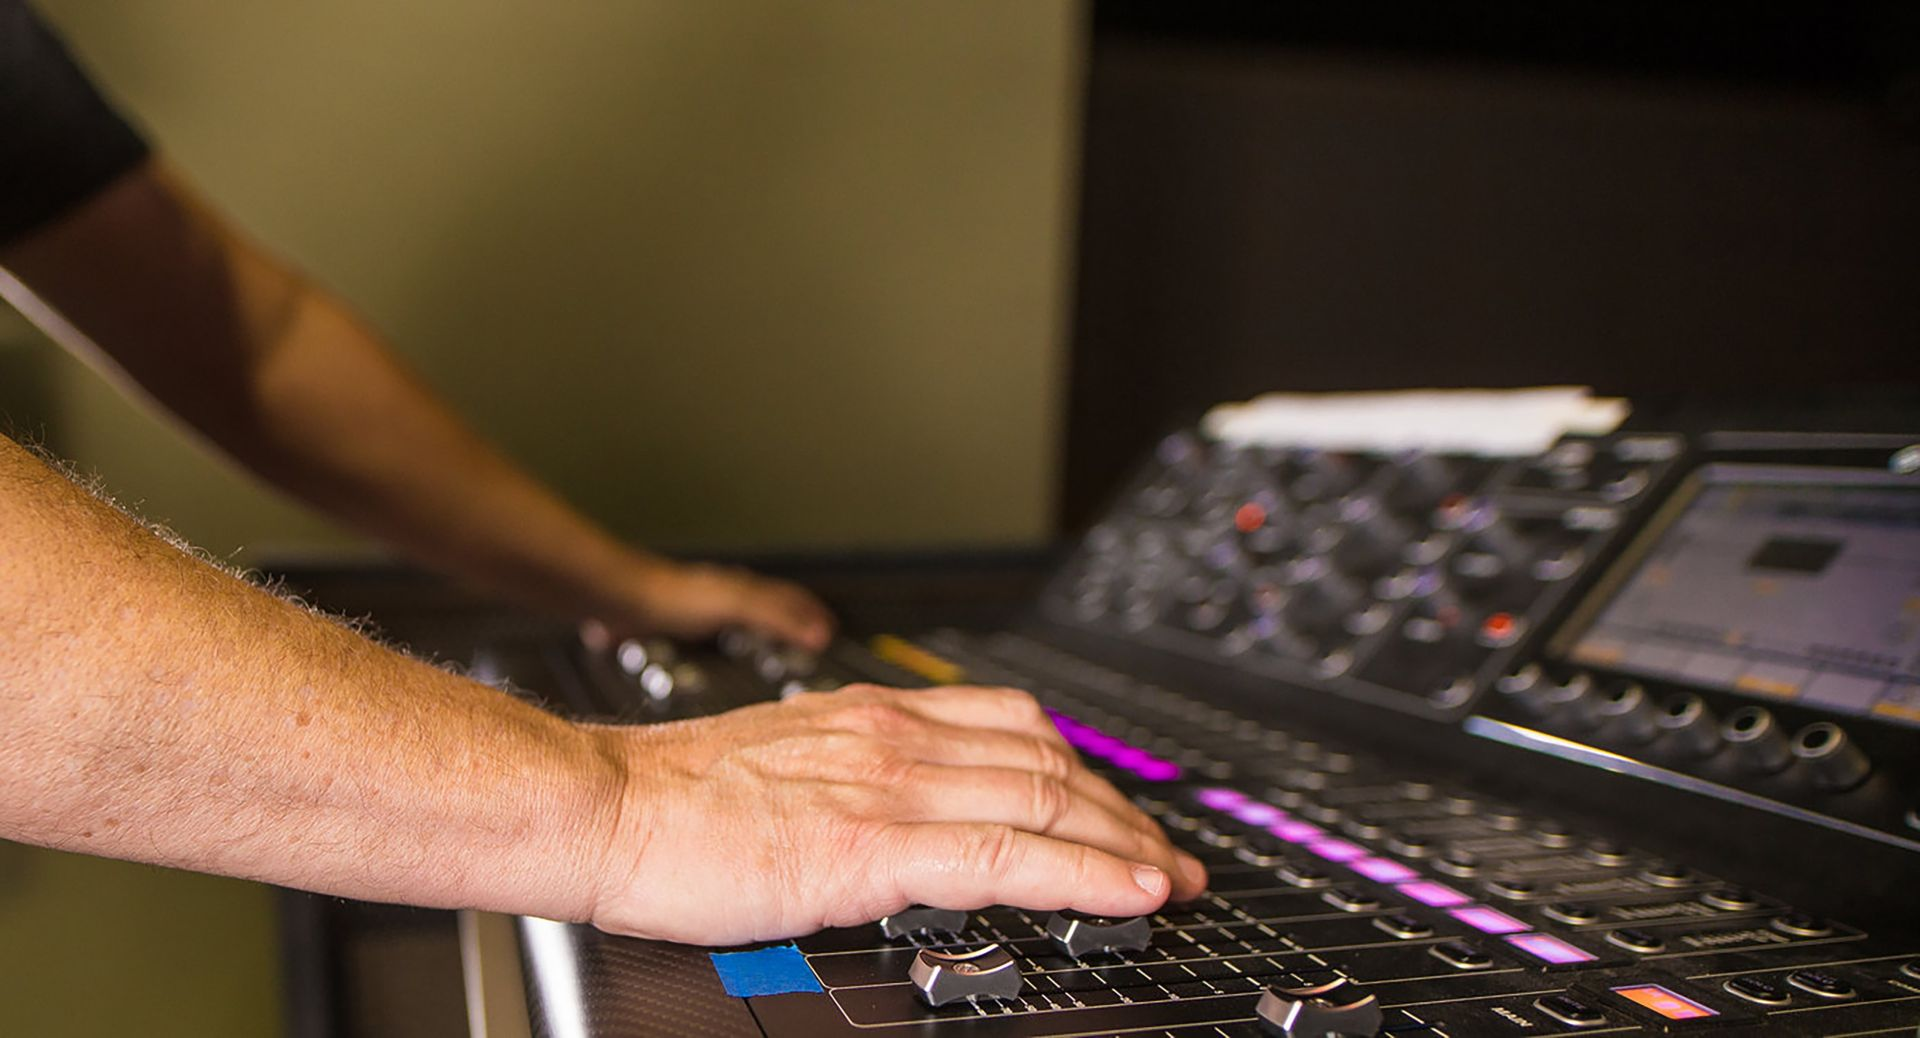 Get Into Composing and Producing Music